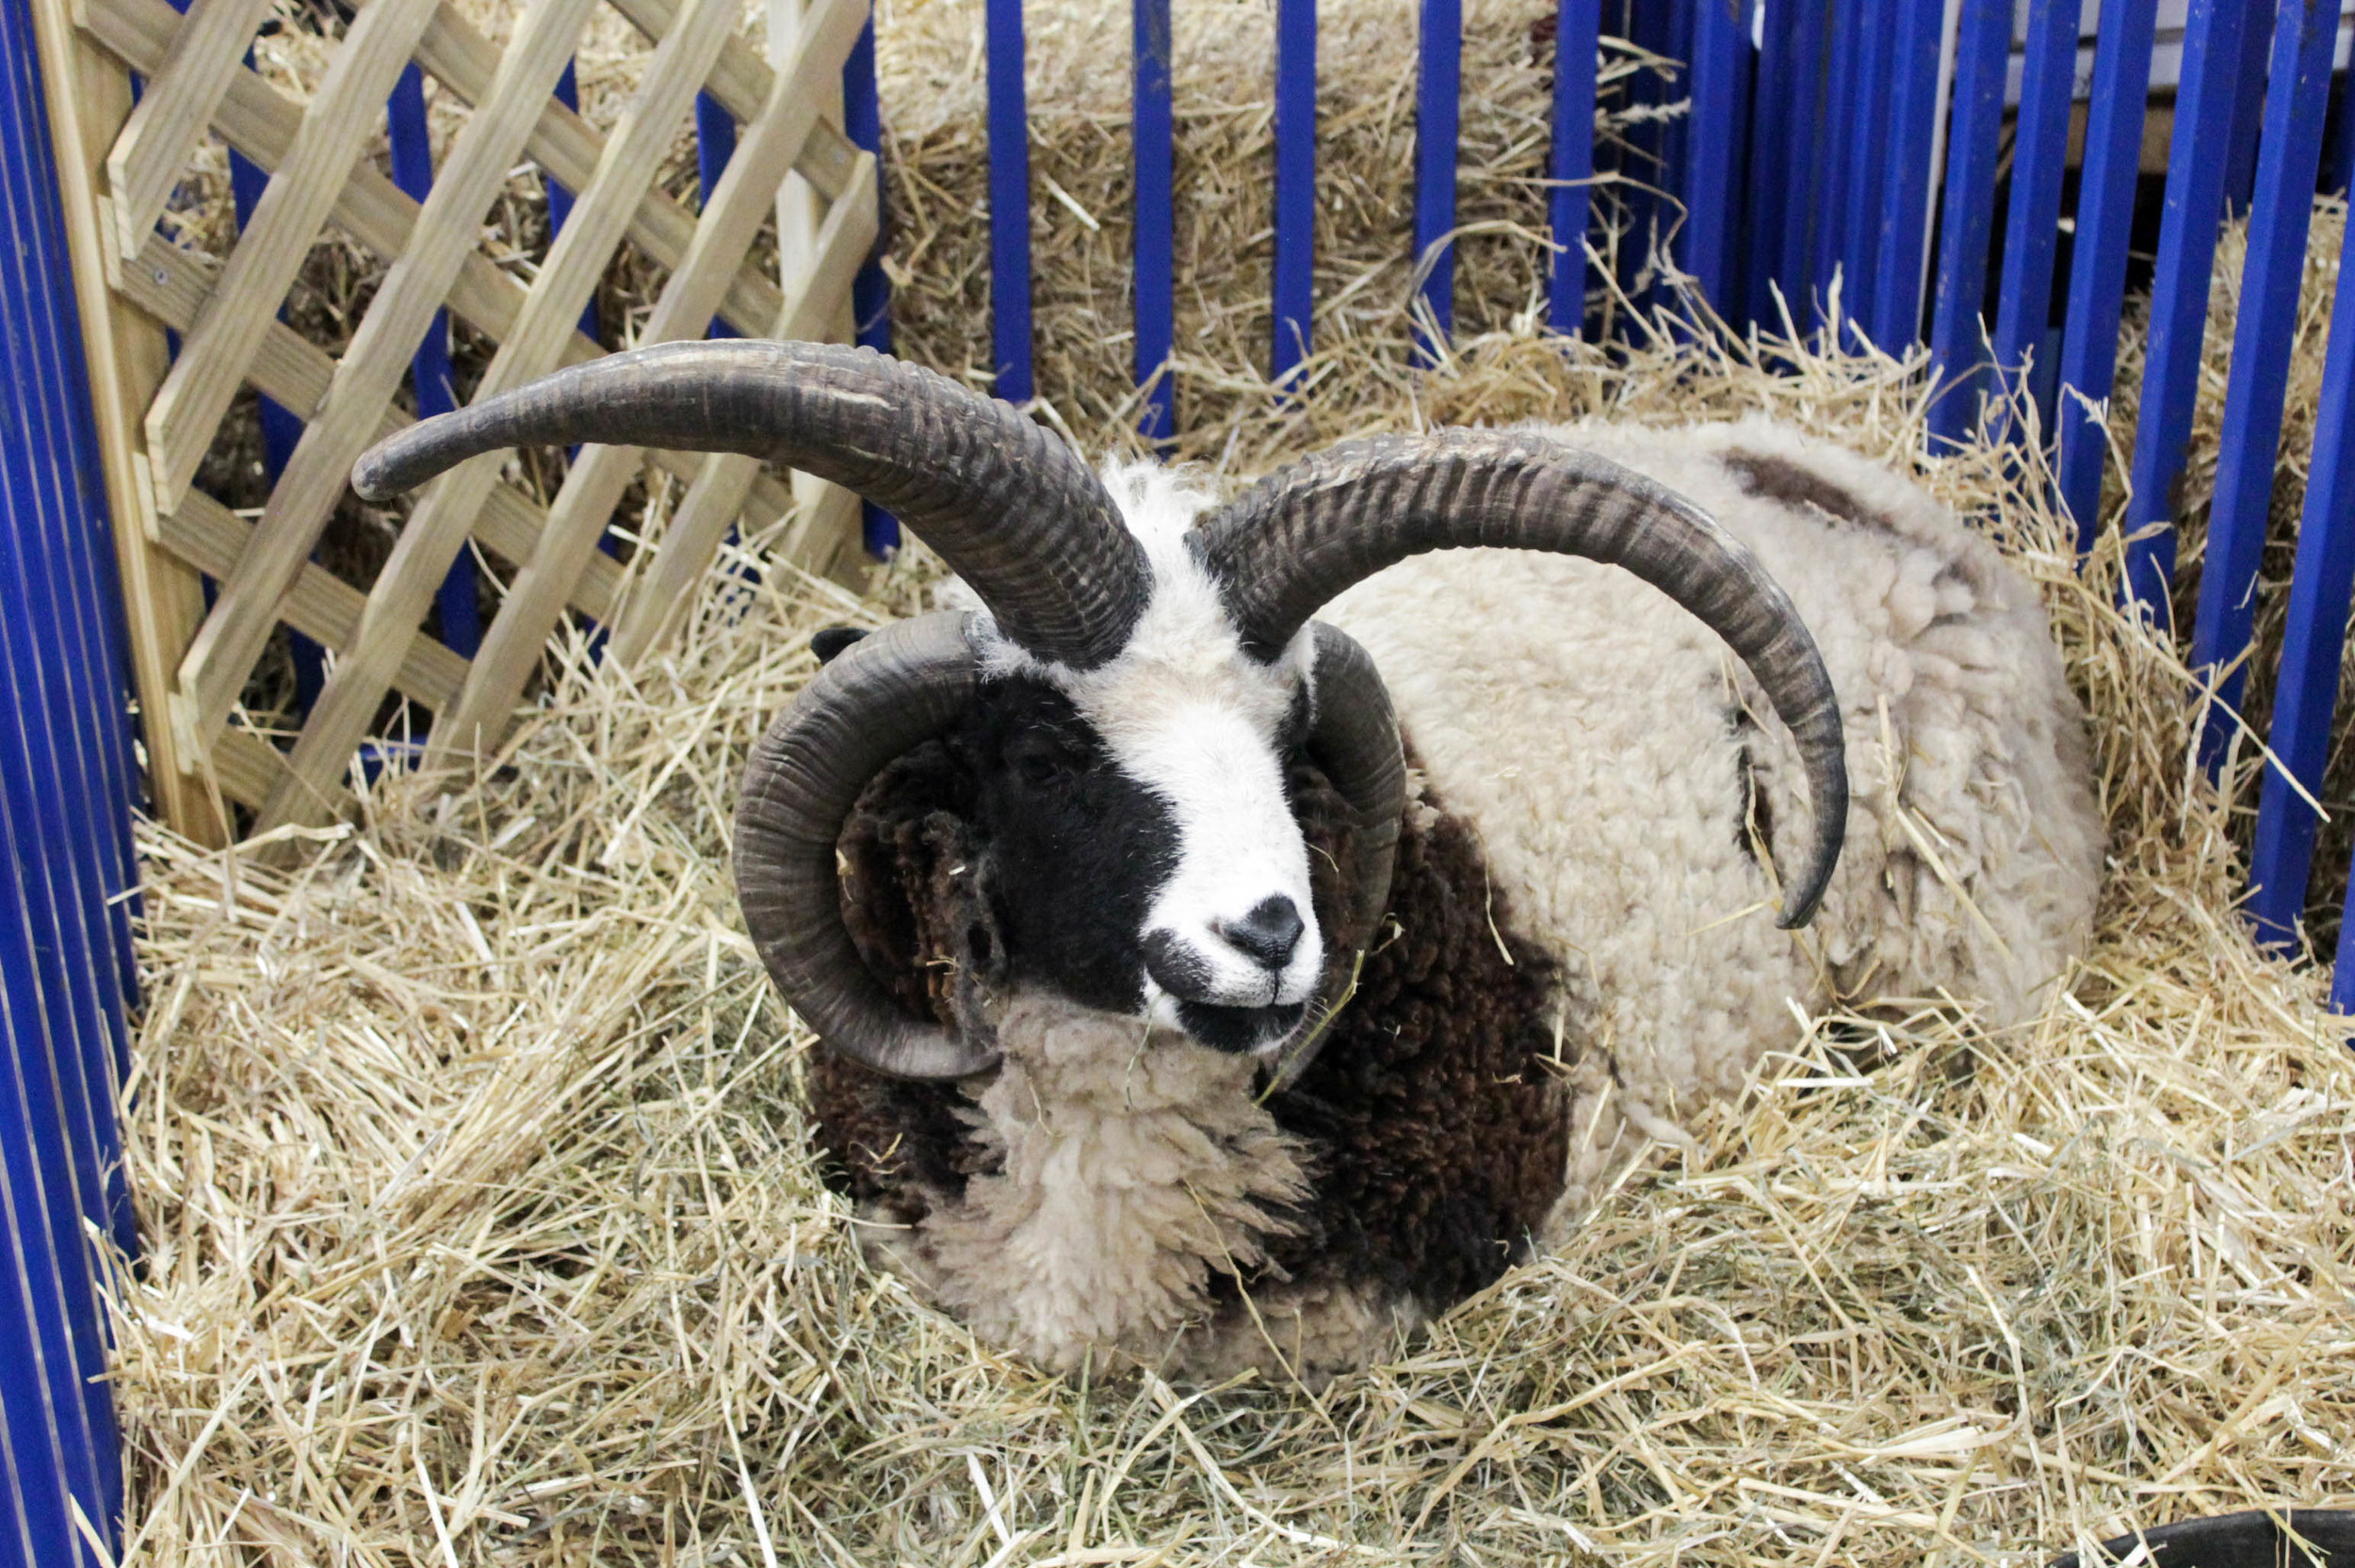 Click here for more photos from the Maryland Sheep and Wool Festival.